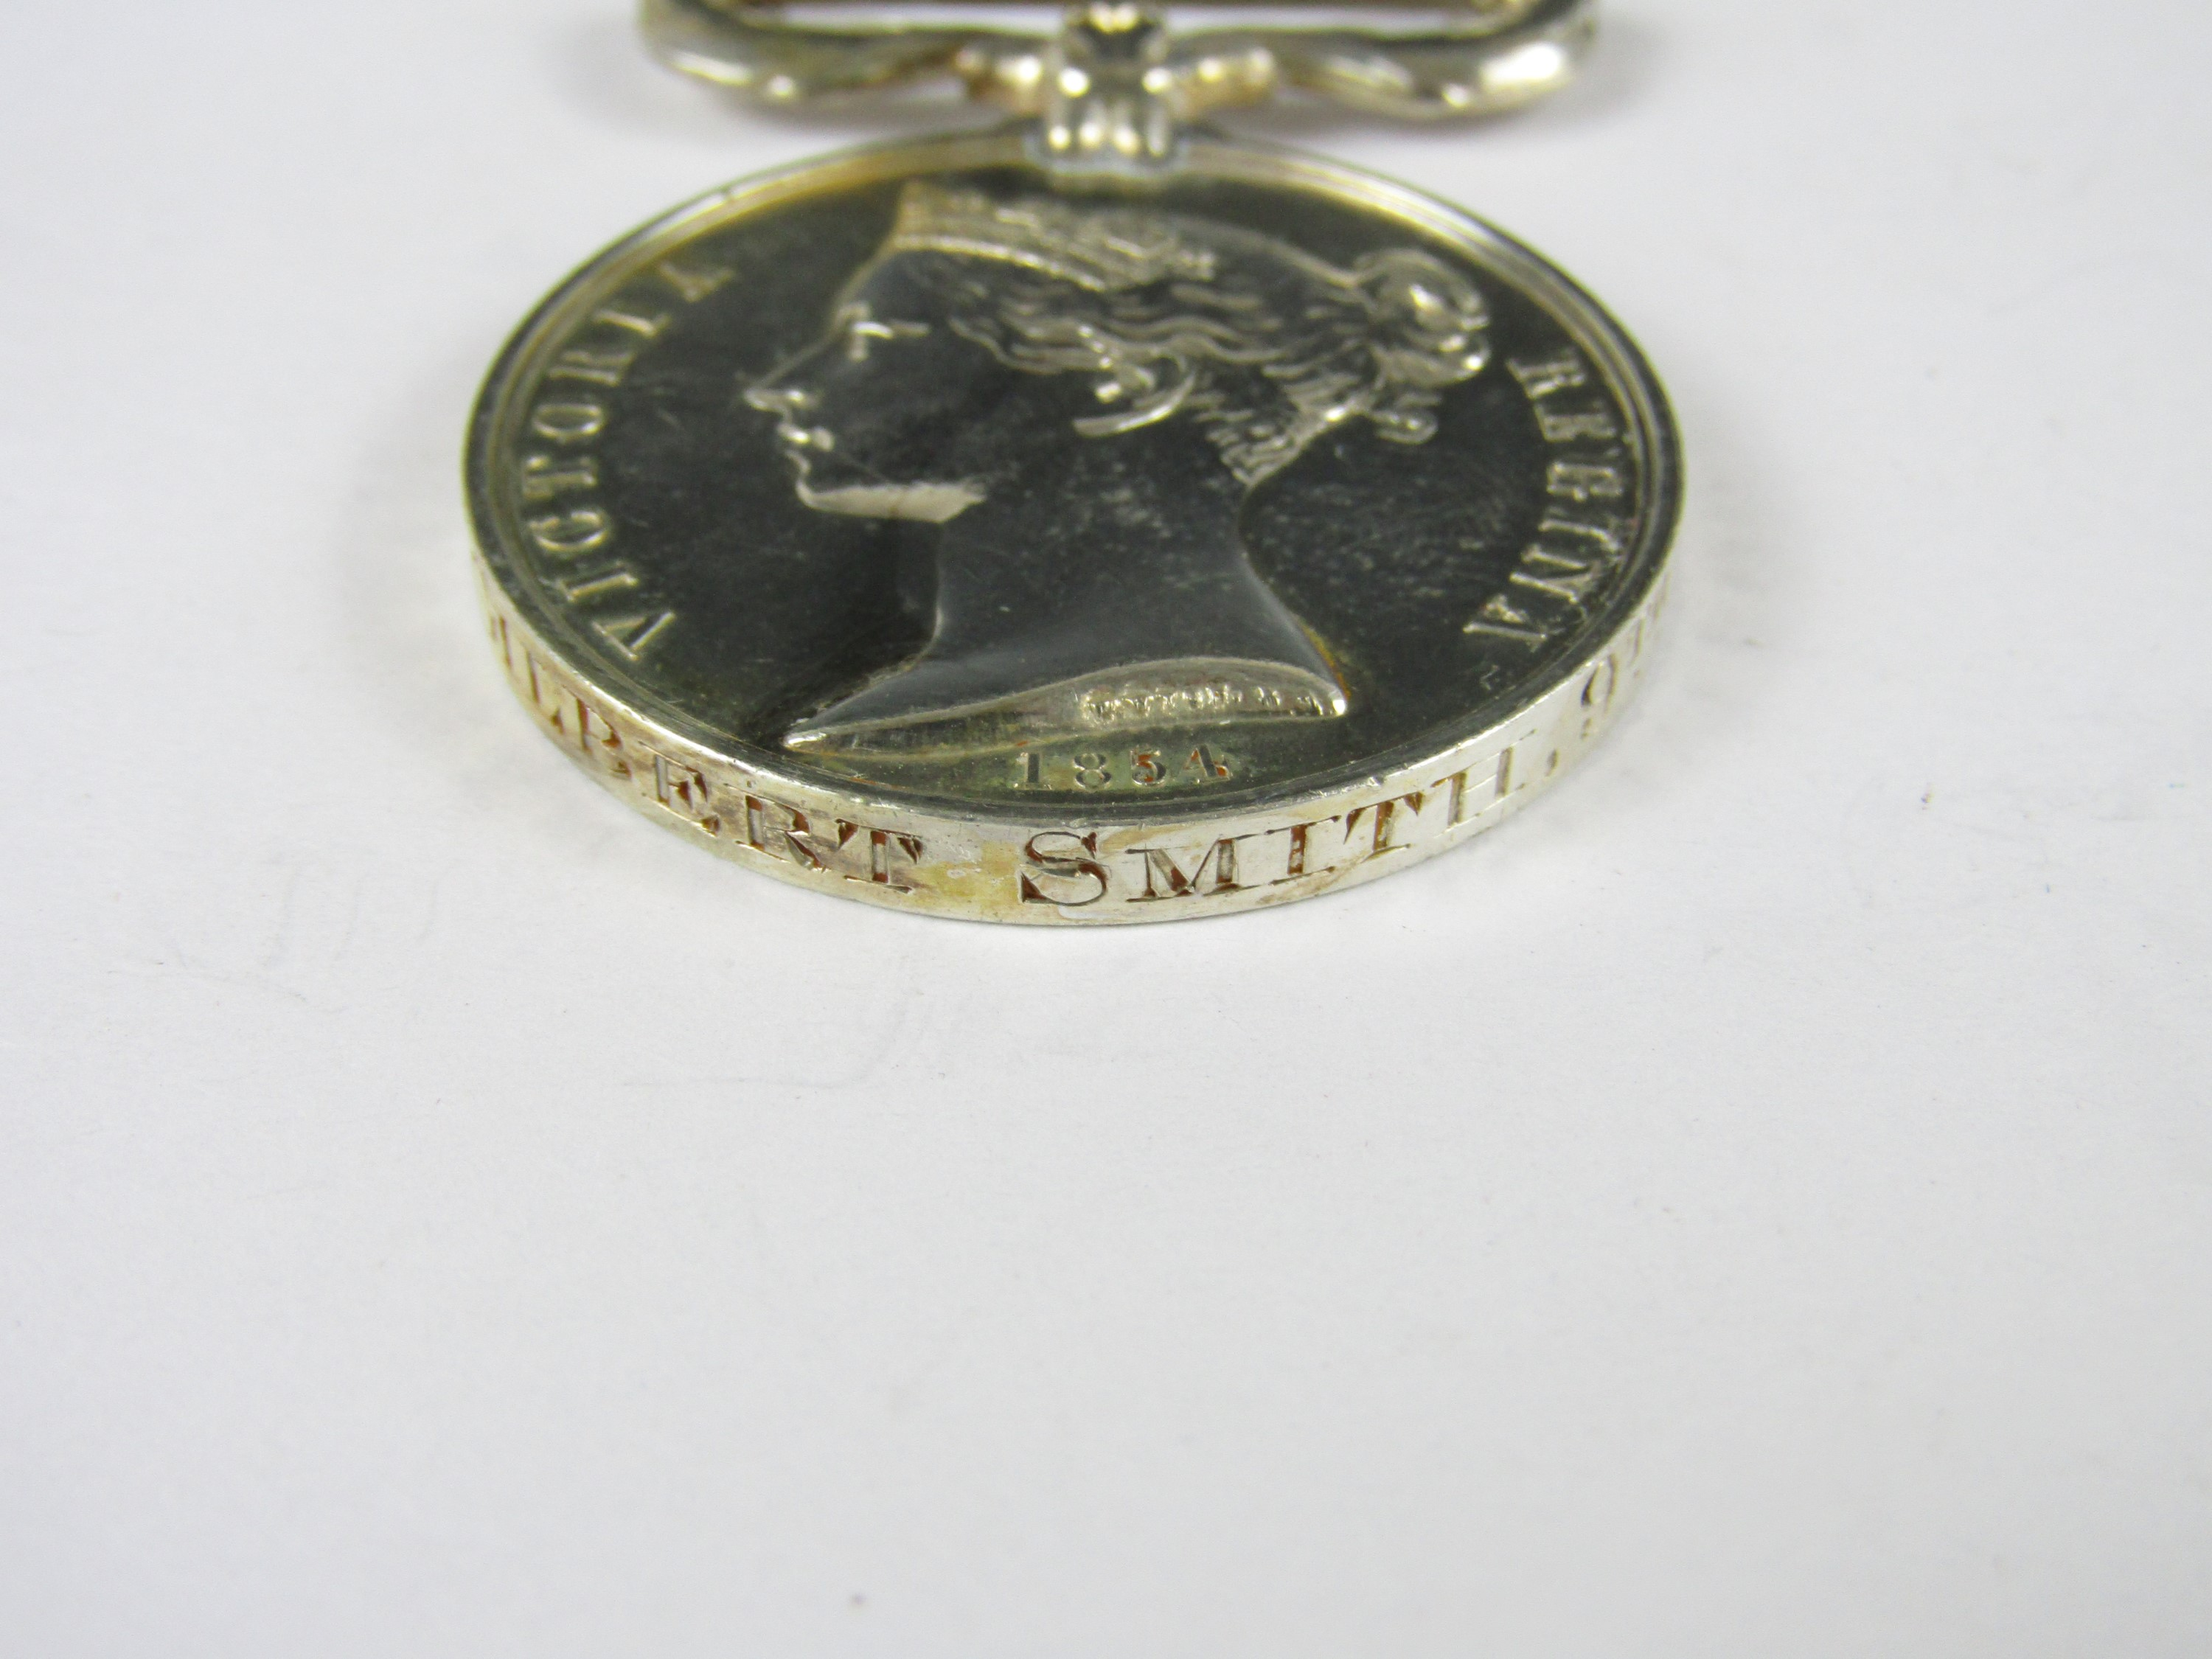 Lot 17 - A Crimea Medal with loose Sebastopol clasp engraved to PRIE Gilbert Smith, 9th Foot